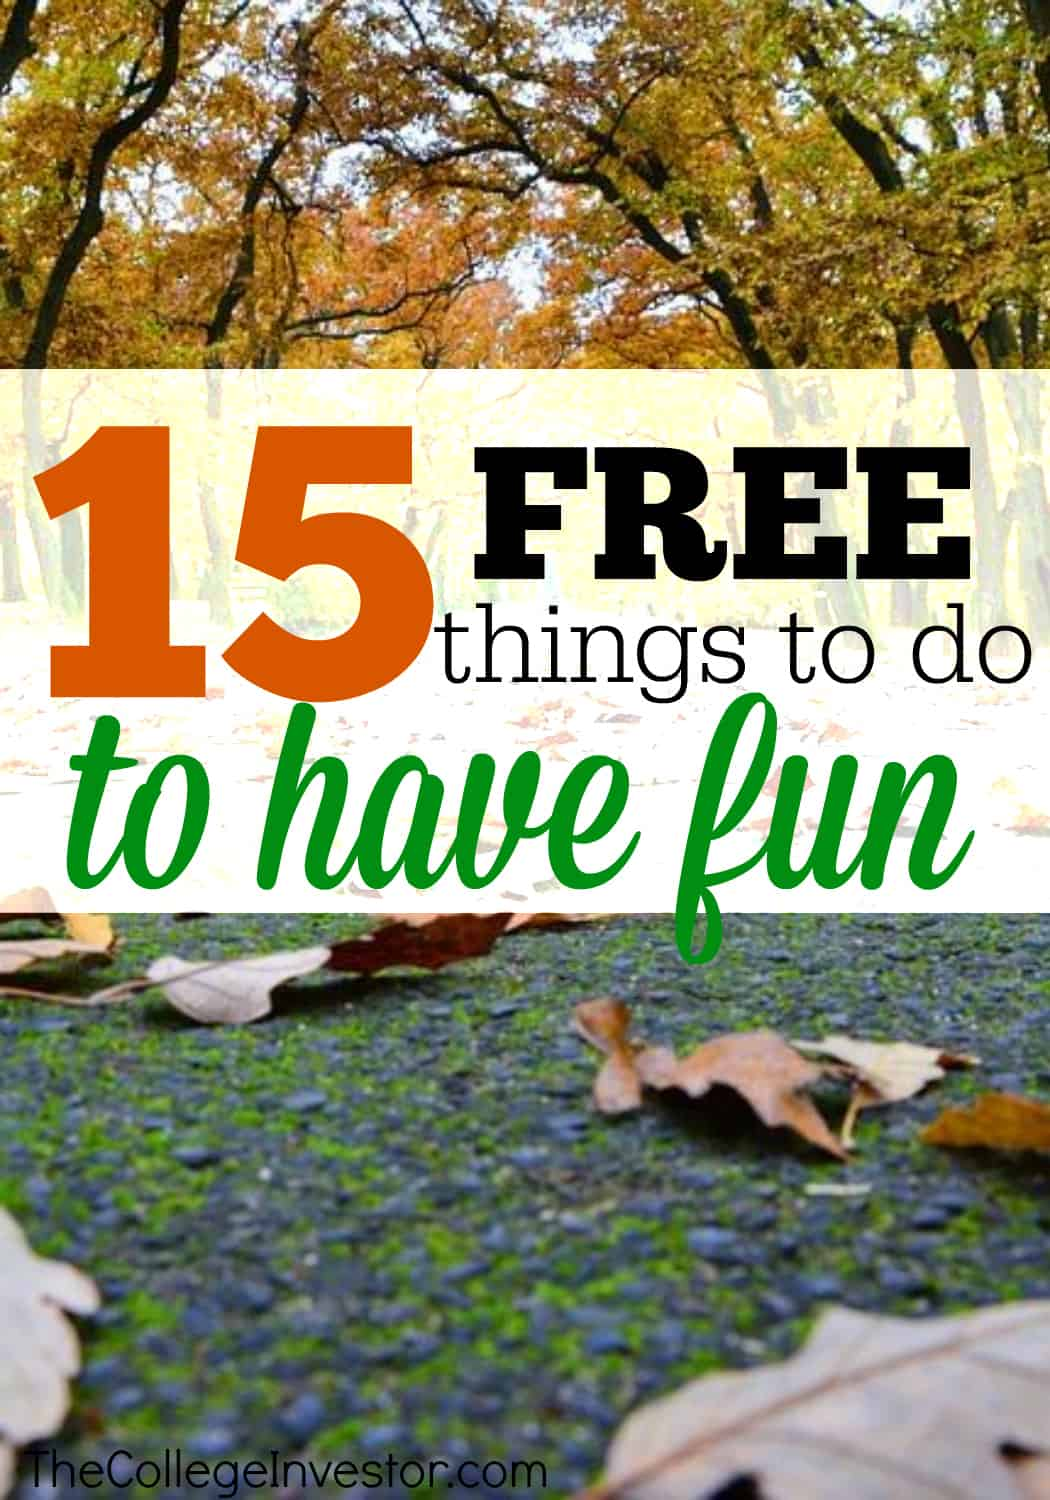 15 Totally Free Things to Do to Have Fun | The College Investor